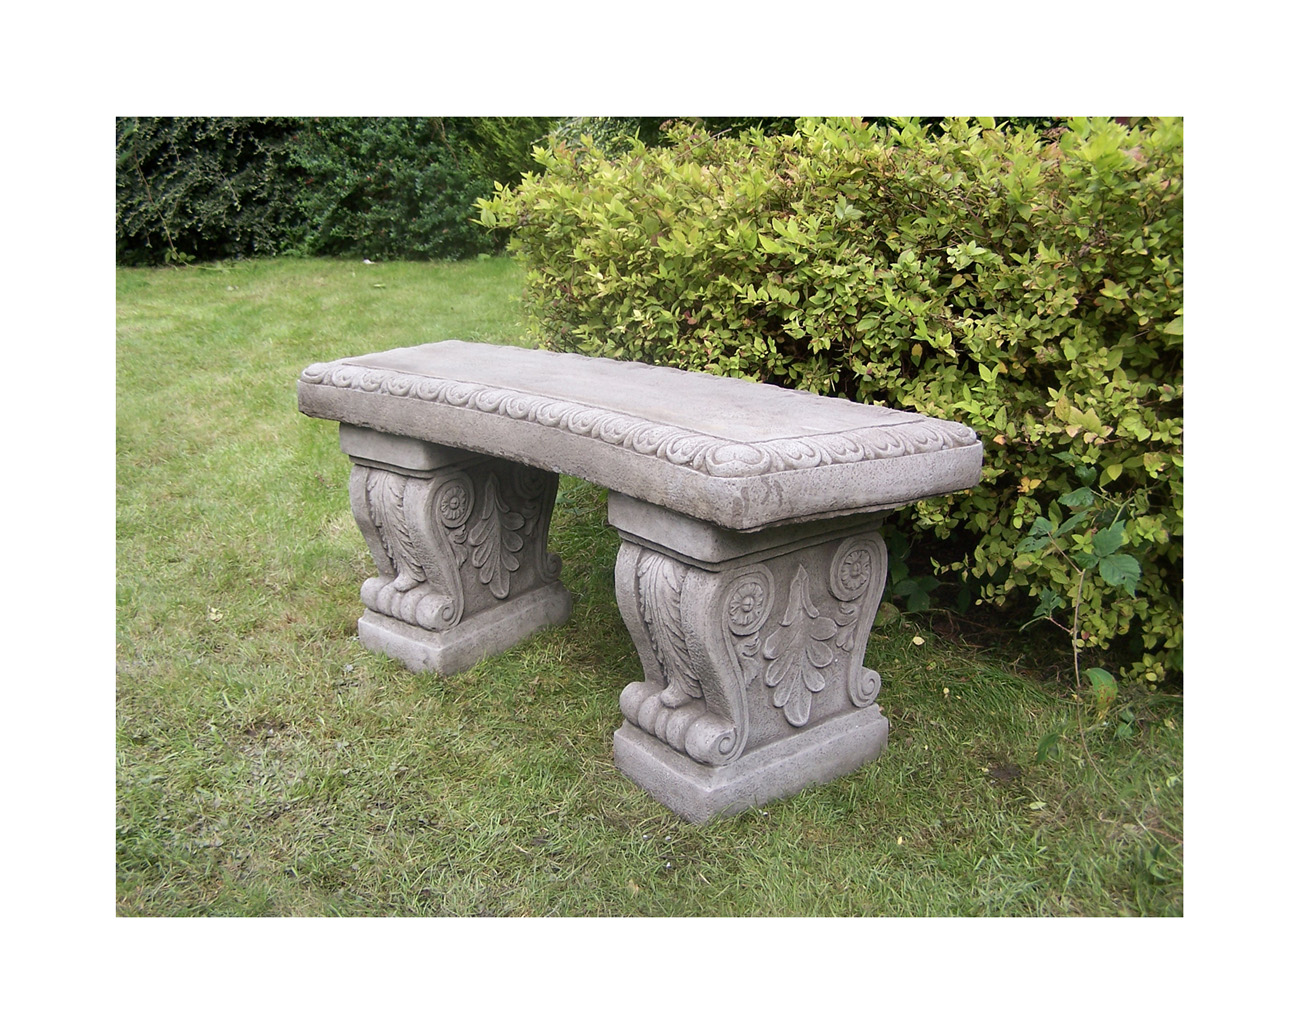 Large cast stone garden bench bespoke garden ornament concrete onefold uk ebay Stone garden bench